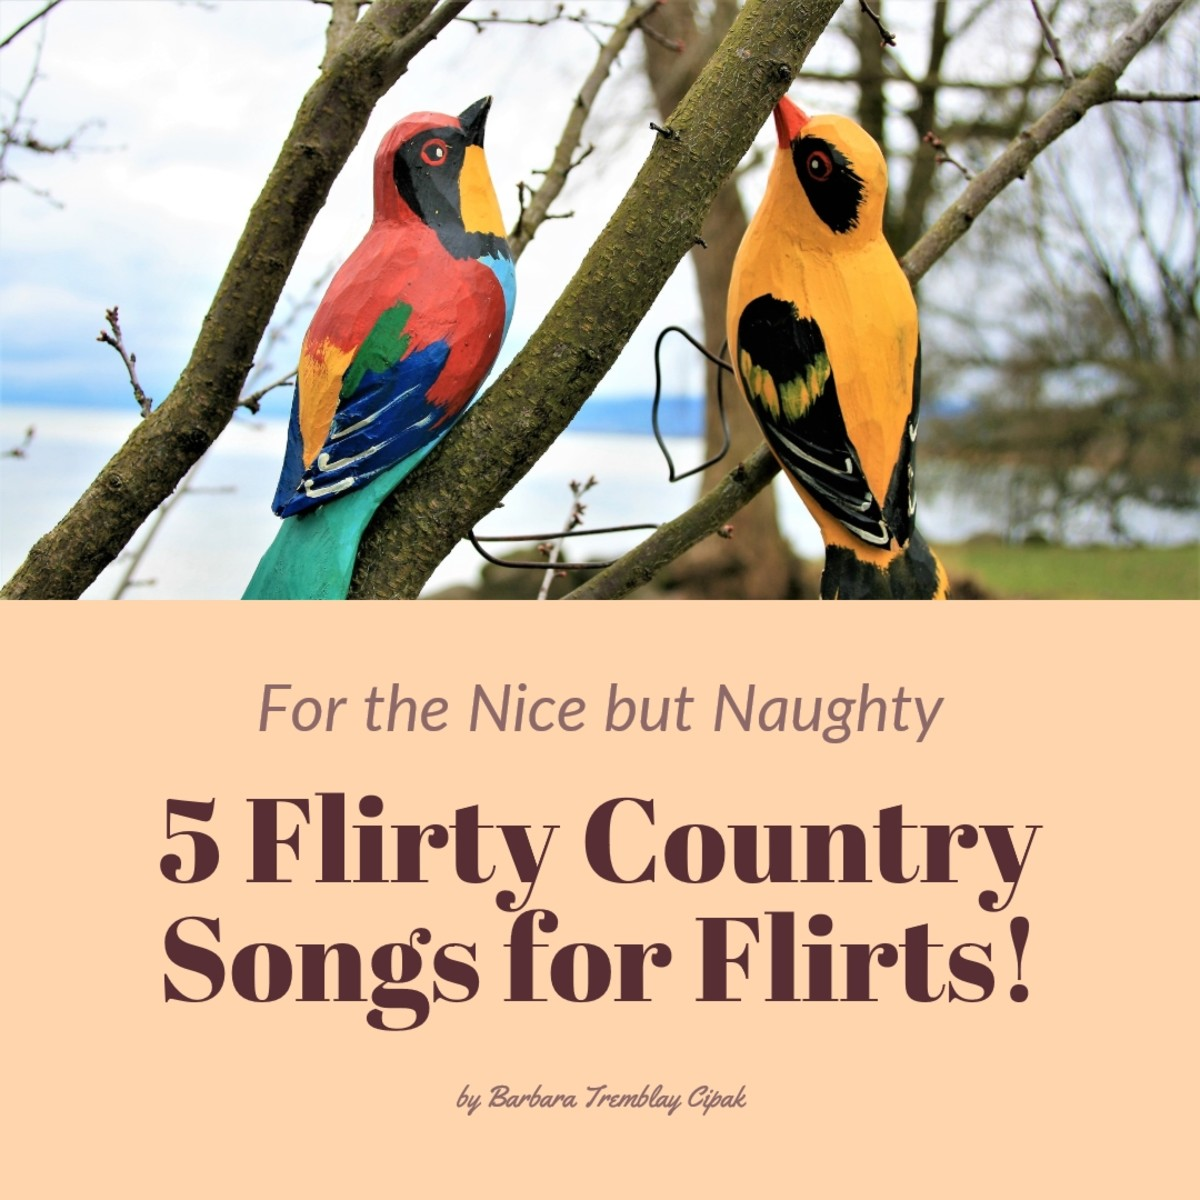 5 Flirty Country Songs for Flirts